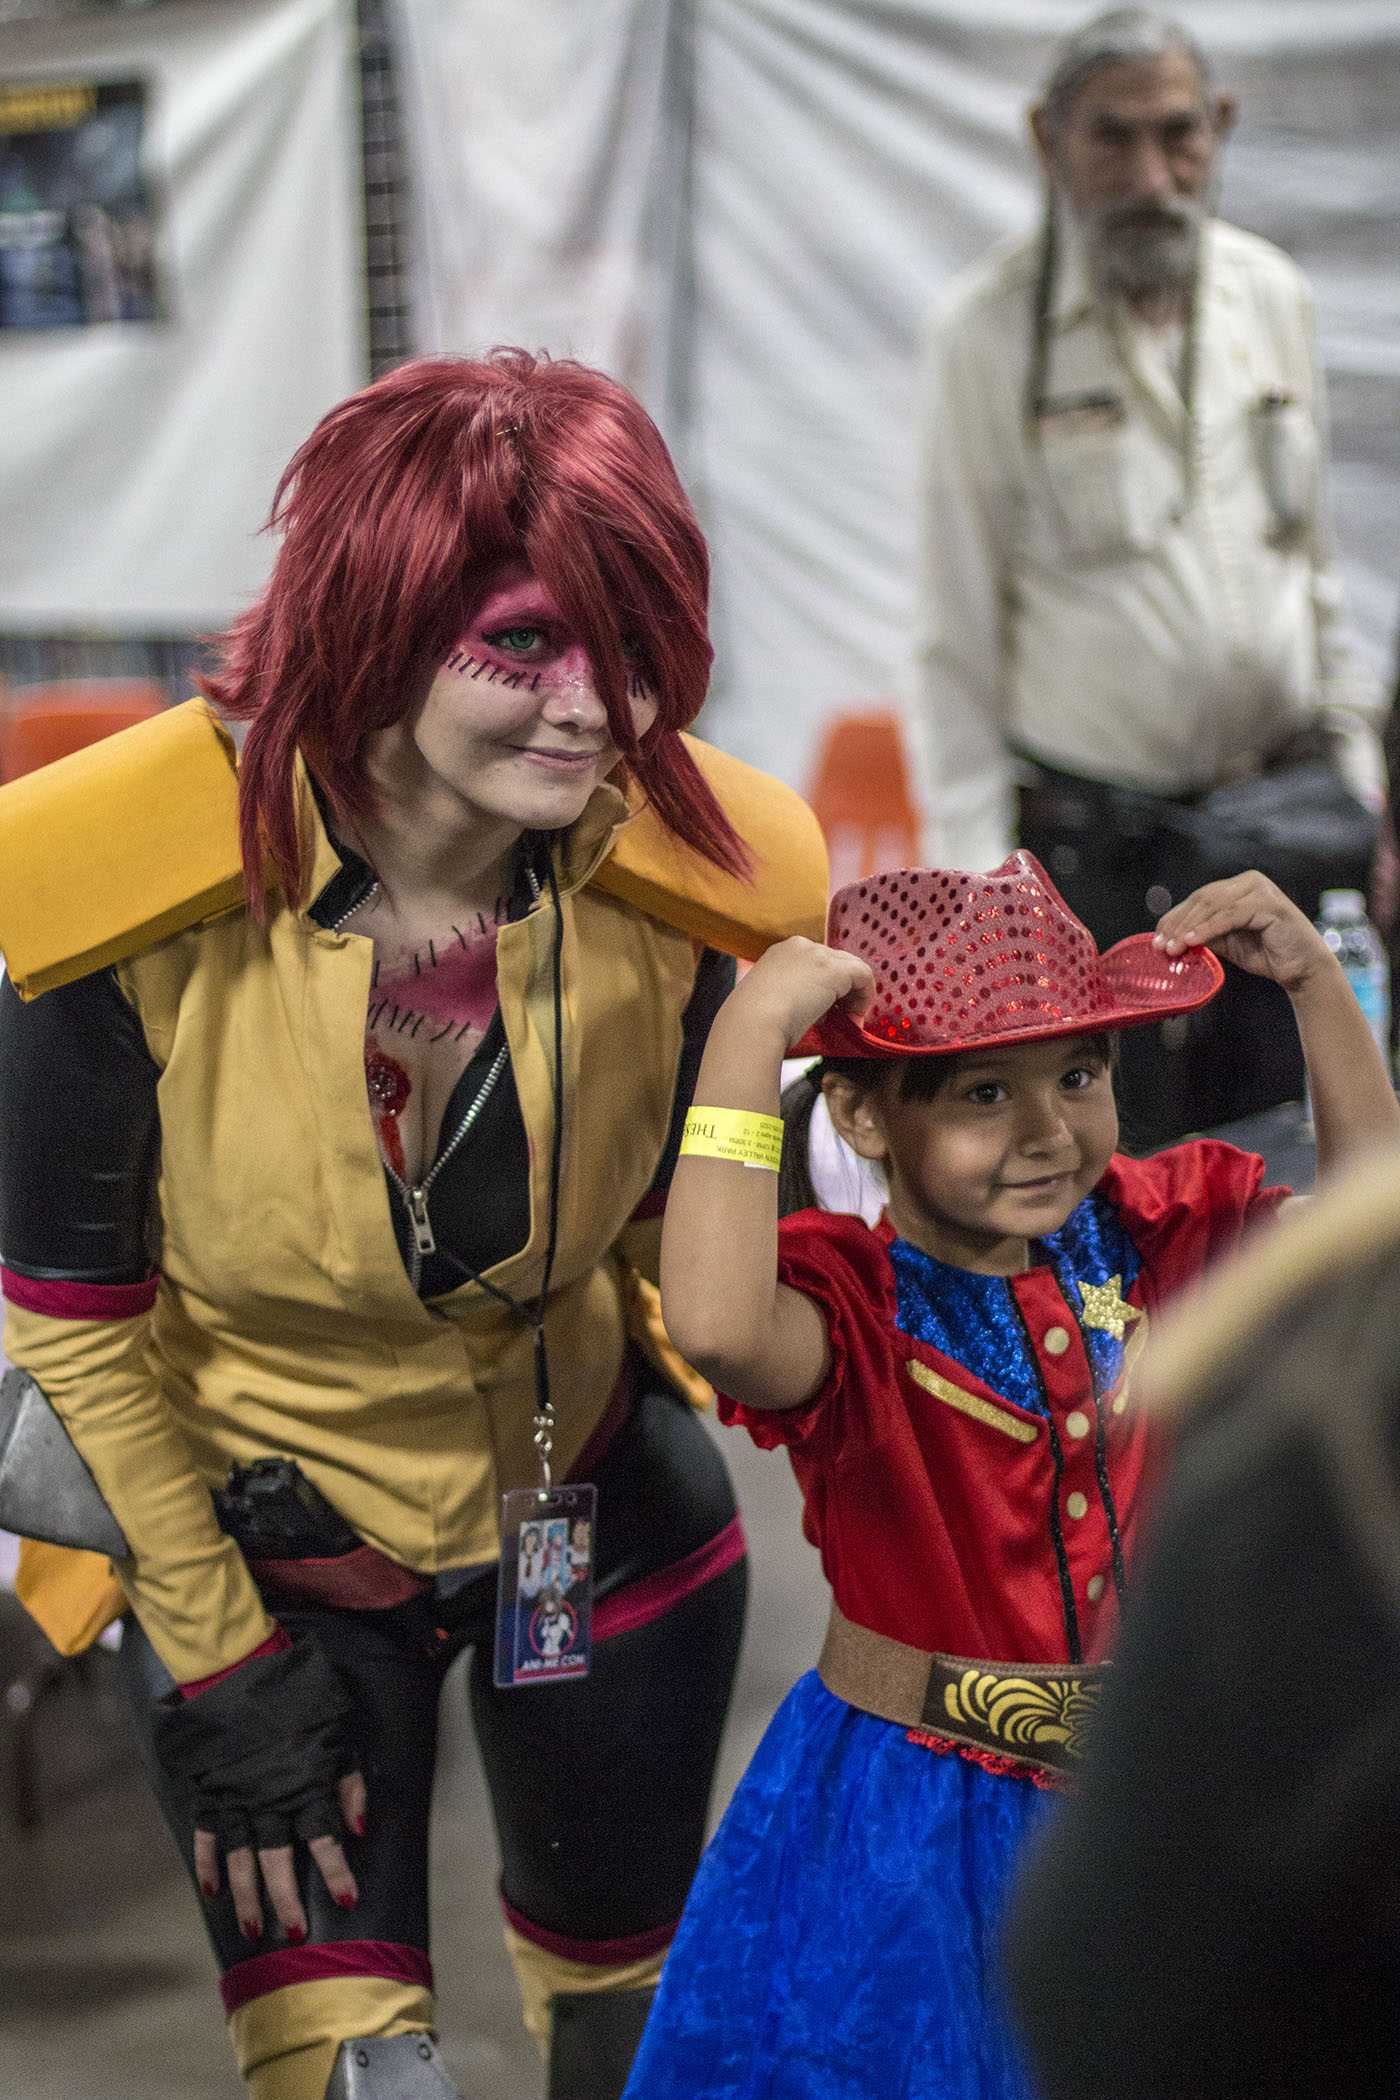 Wynsom Rose, dressed up as Zombina from the anime Monster Musume, poses for a photo with fan Khloe McBride at Ani-Me Con at the Fresno Fairgrounds on March 18, 2017. Photo/ Larry Valenzuela